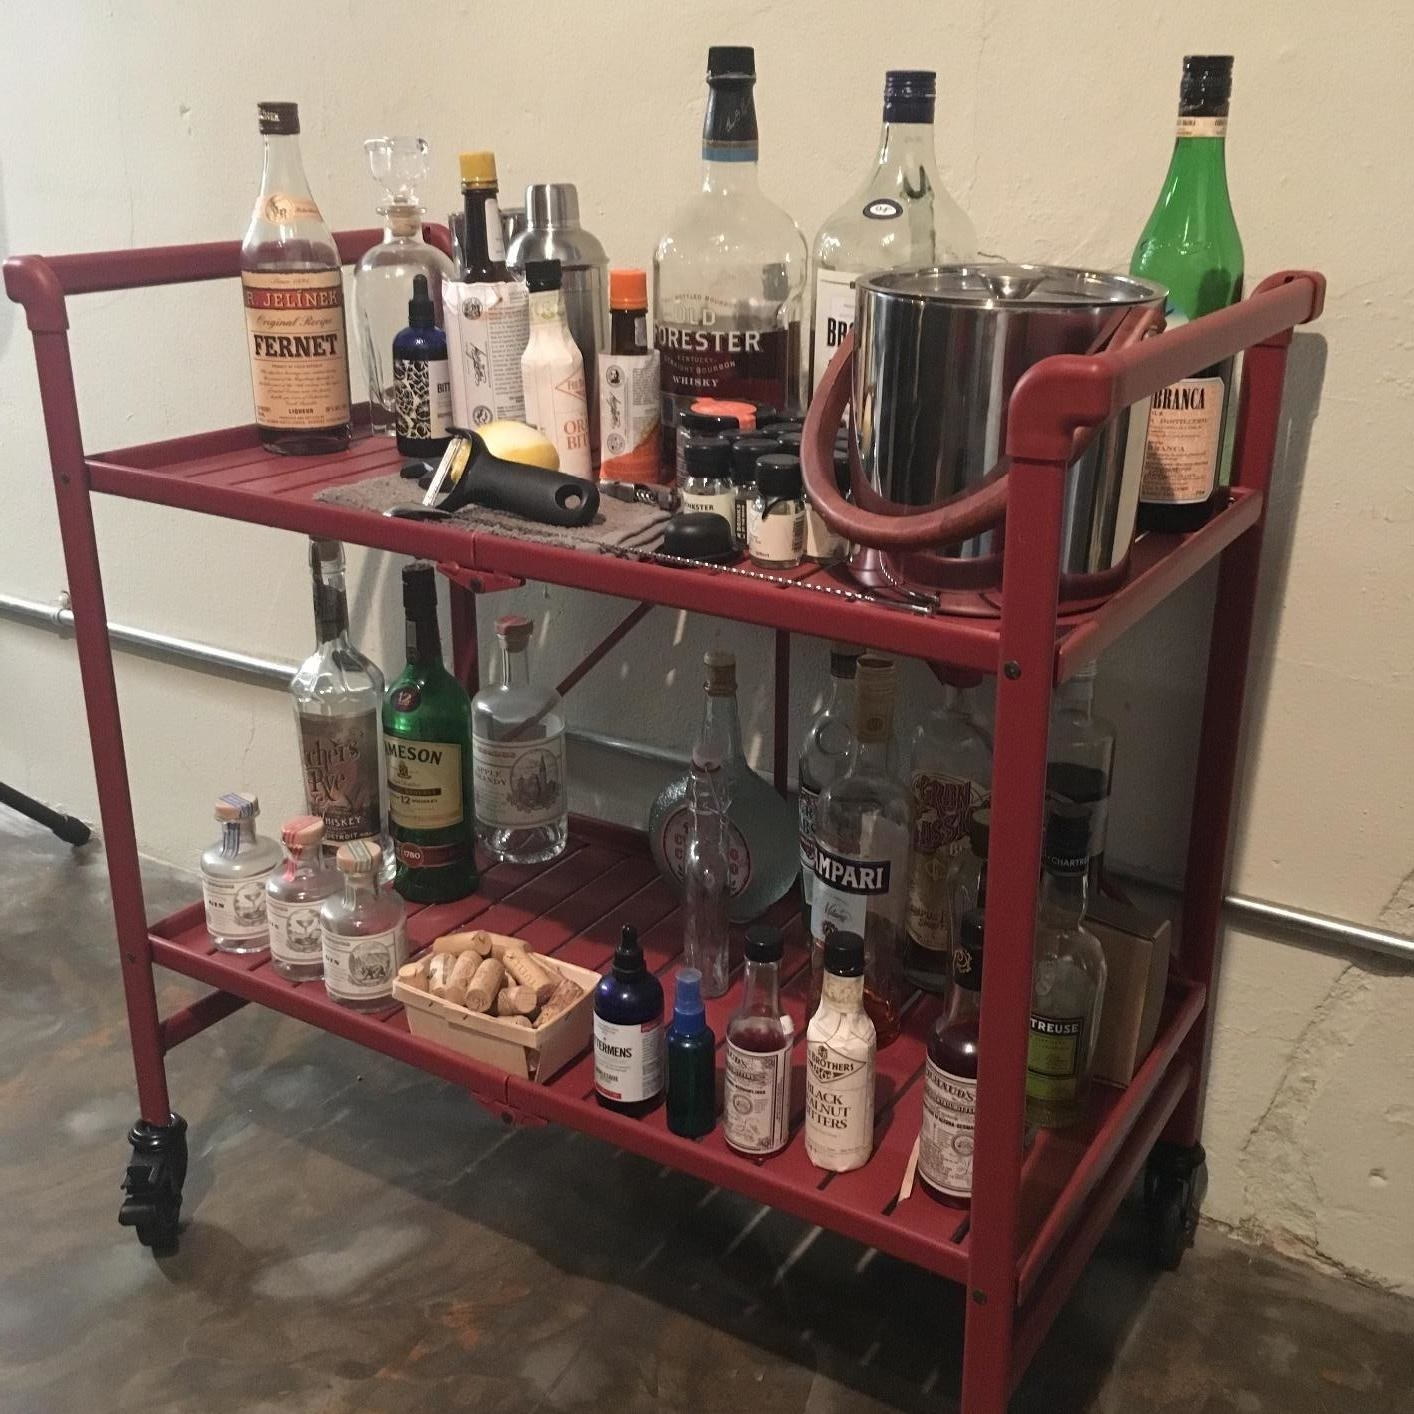 A red, two shelf folding service cart on four caster wheels packed with bottles of booze